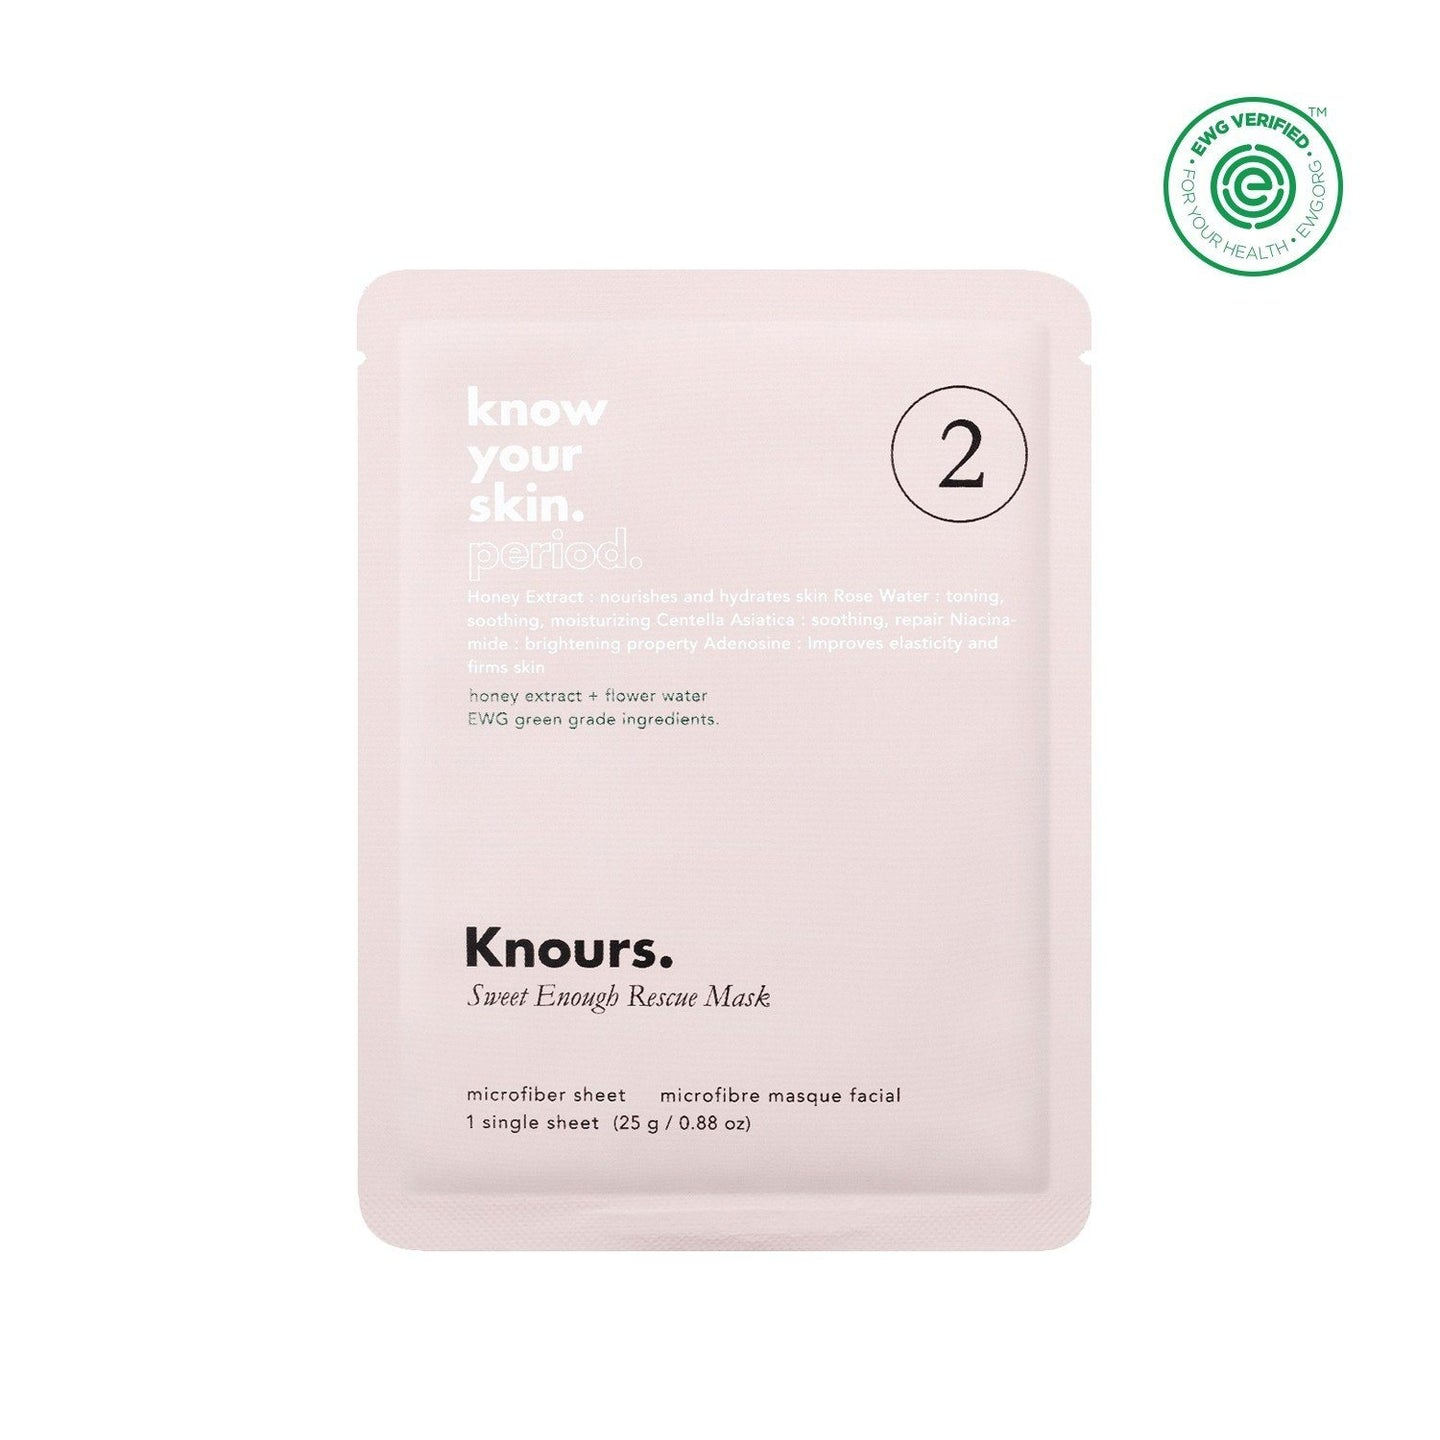 Knours Sweet Enough Rescue Mask